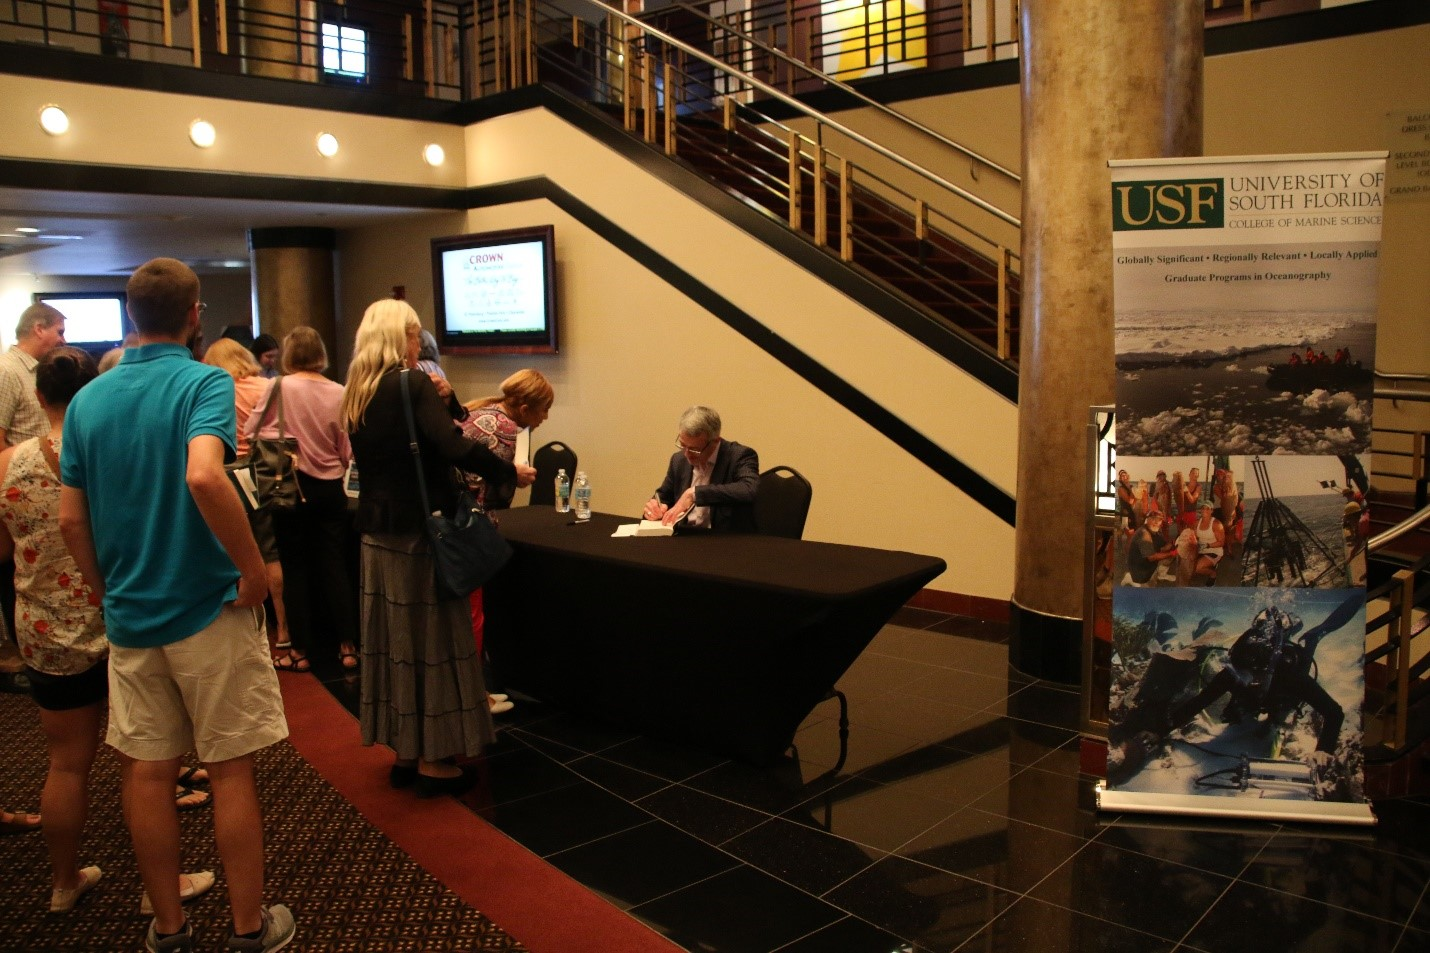 Mearns signed copies of his recent book for fans gathered in the lobby of the Mahaffey after his talk.